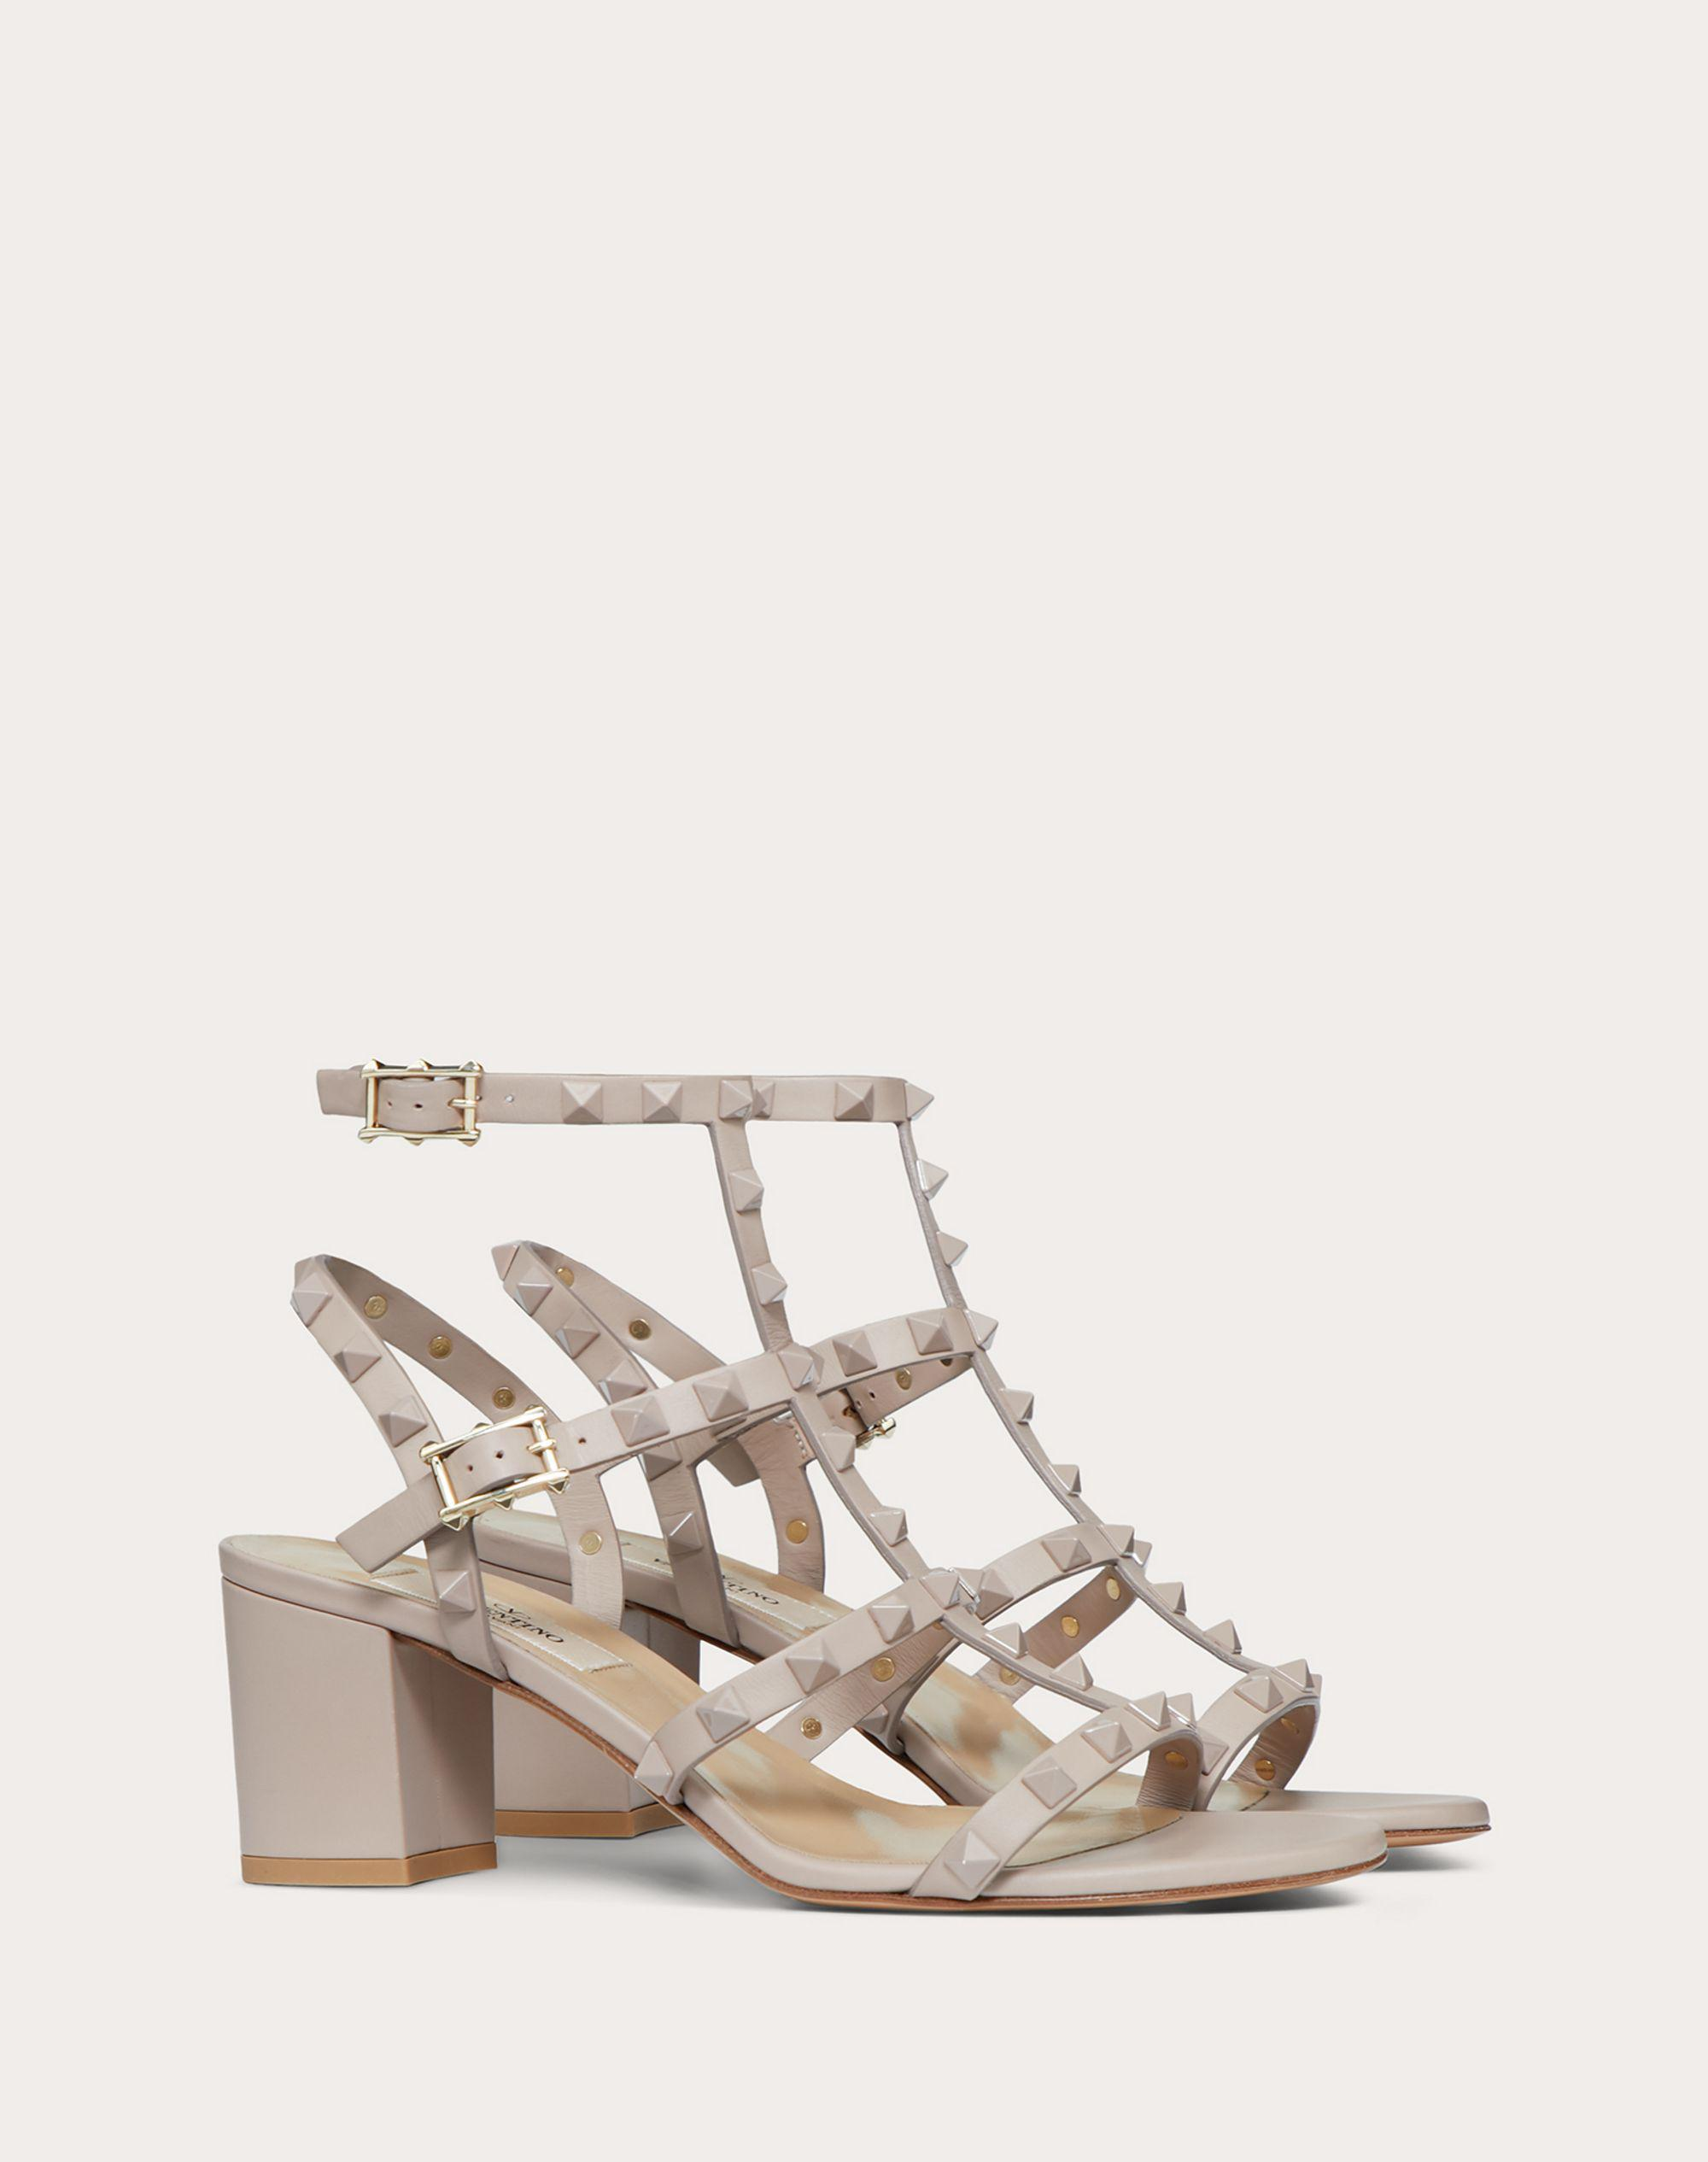 Rockstud Ankle Strap Calfskin Leather Sandal with Tonal Studs 60 mm 1